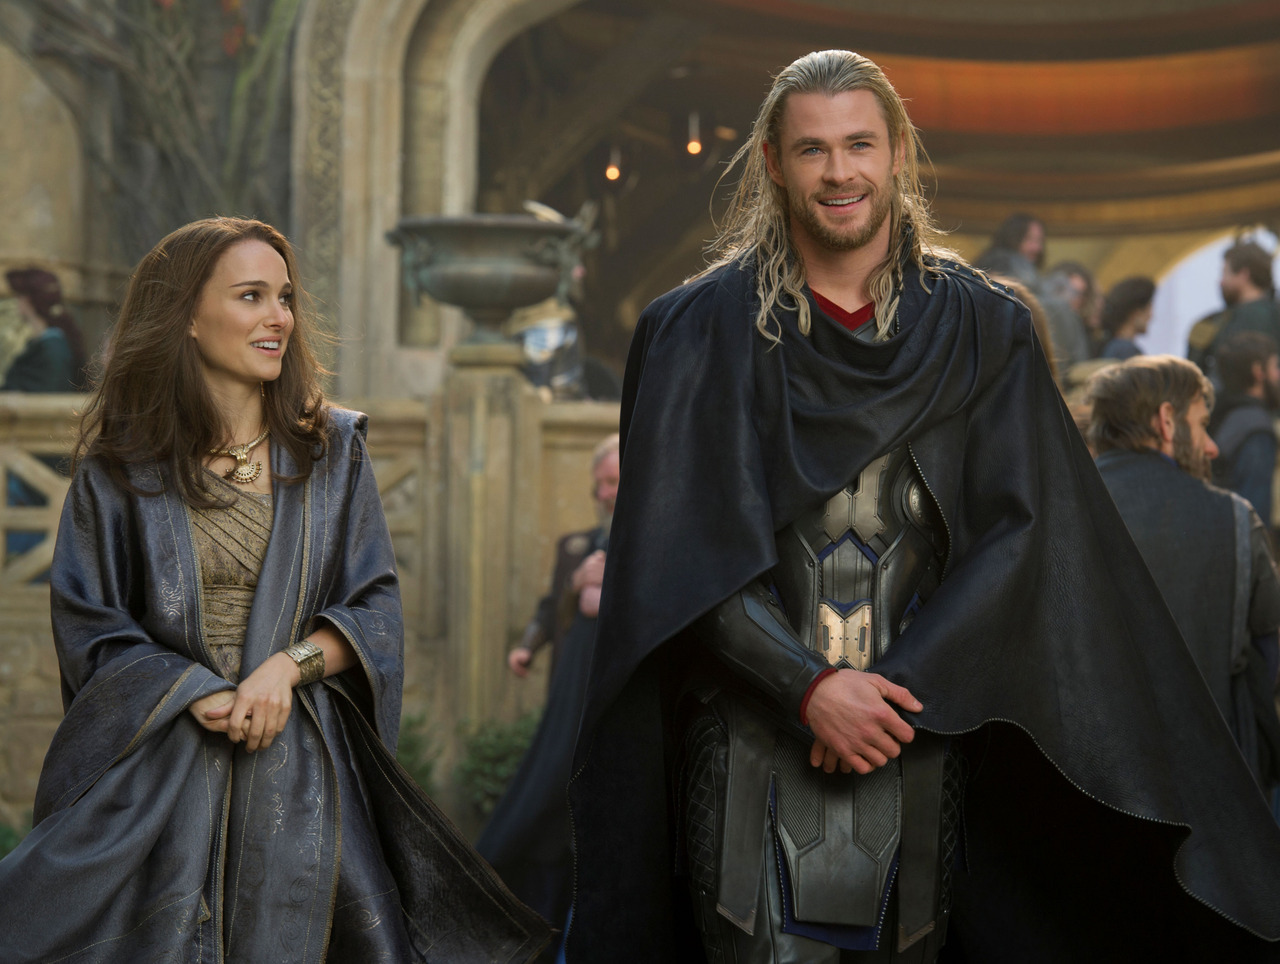 as Jane in Thor 2: The Dark World (2013)